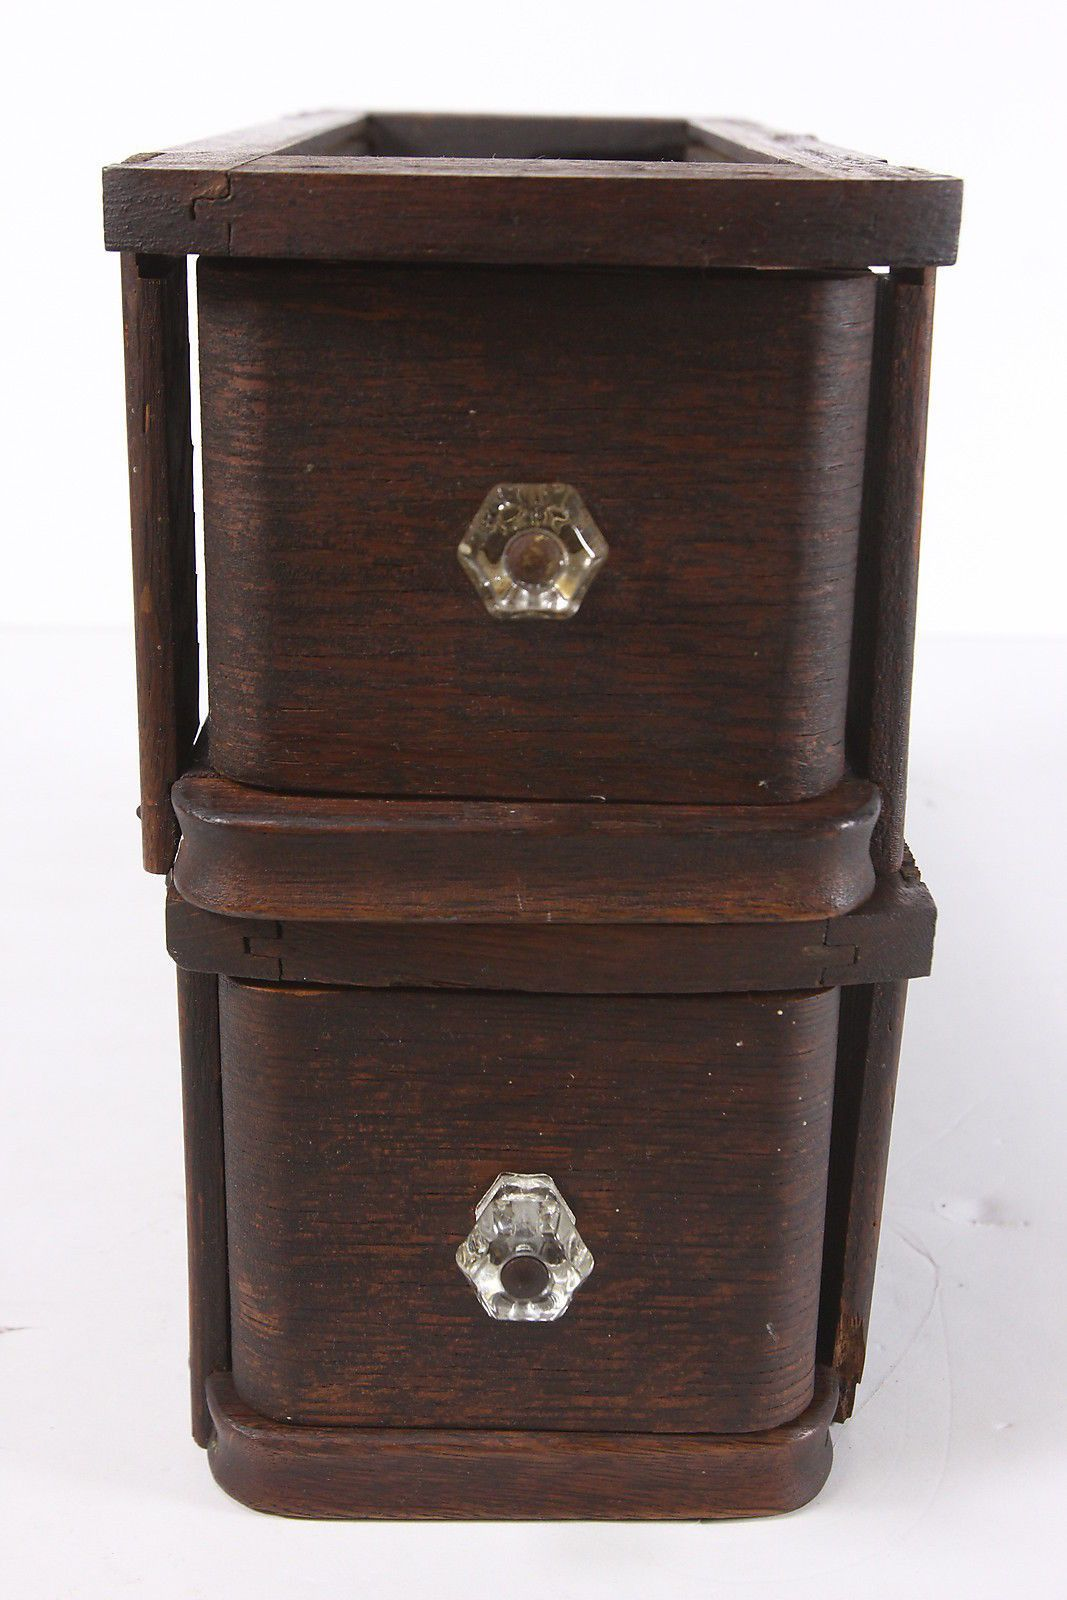 Treadle Sewing Machine Cabinet Antique Singer Treadle Sewing Machine Cabinet 6 Drawers W Thistle